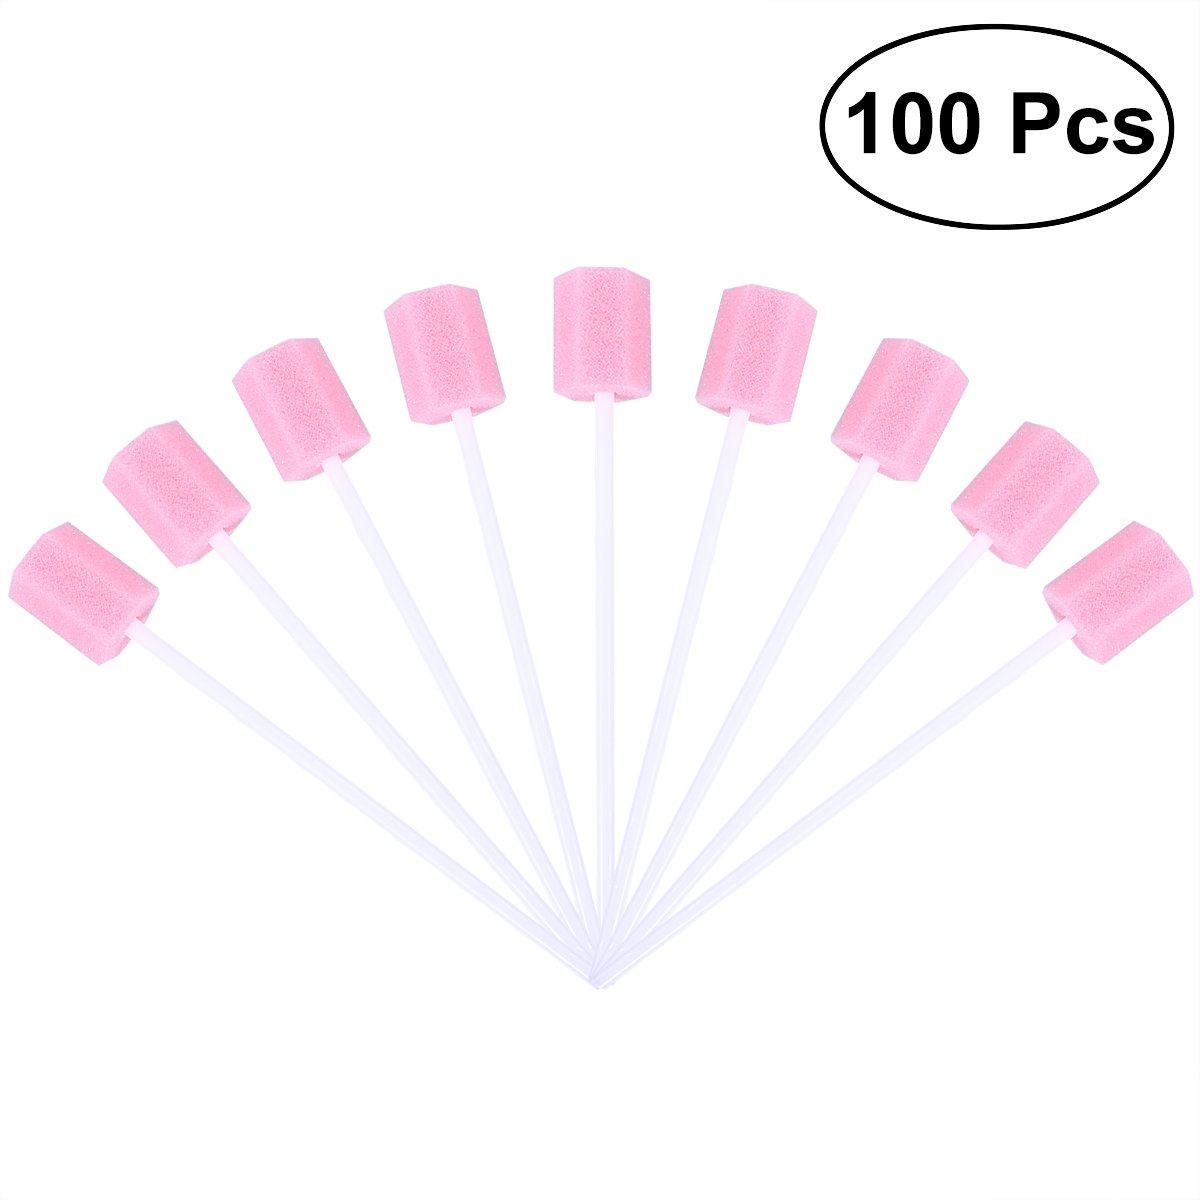 Oral Swabs ROSENICE Disposable Sponge Swab for Oral Care Cleaning Use Pack of 100